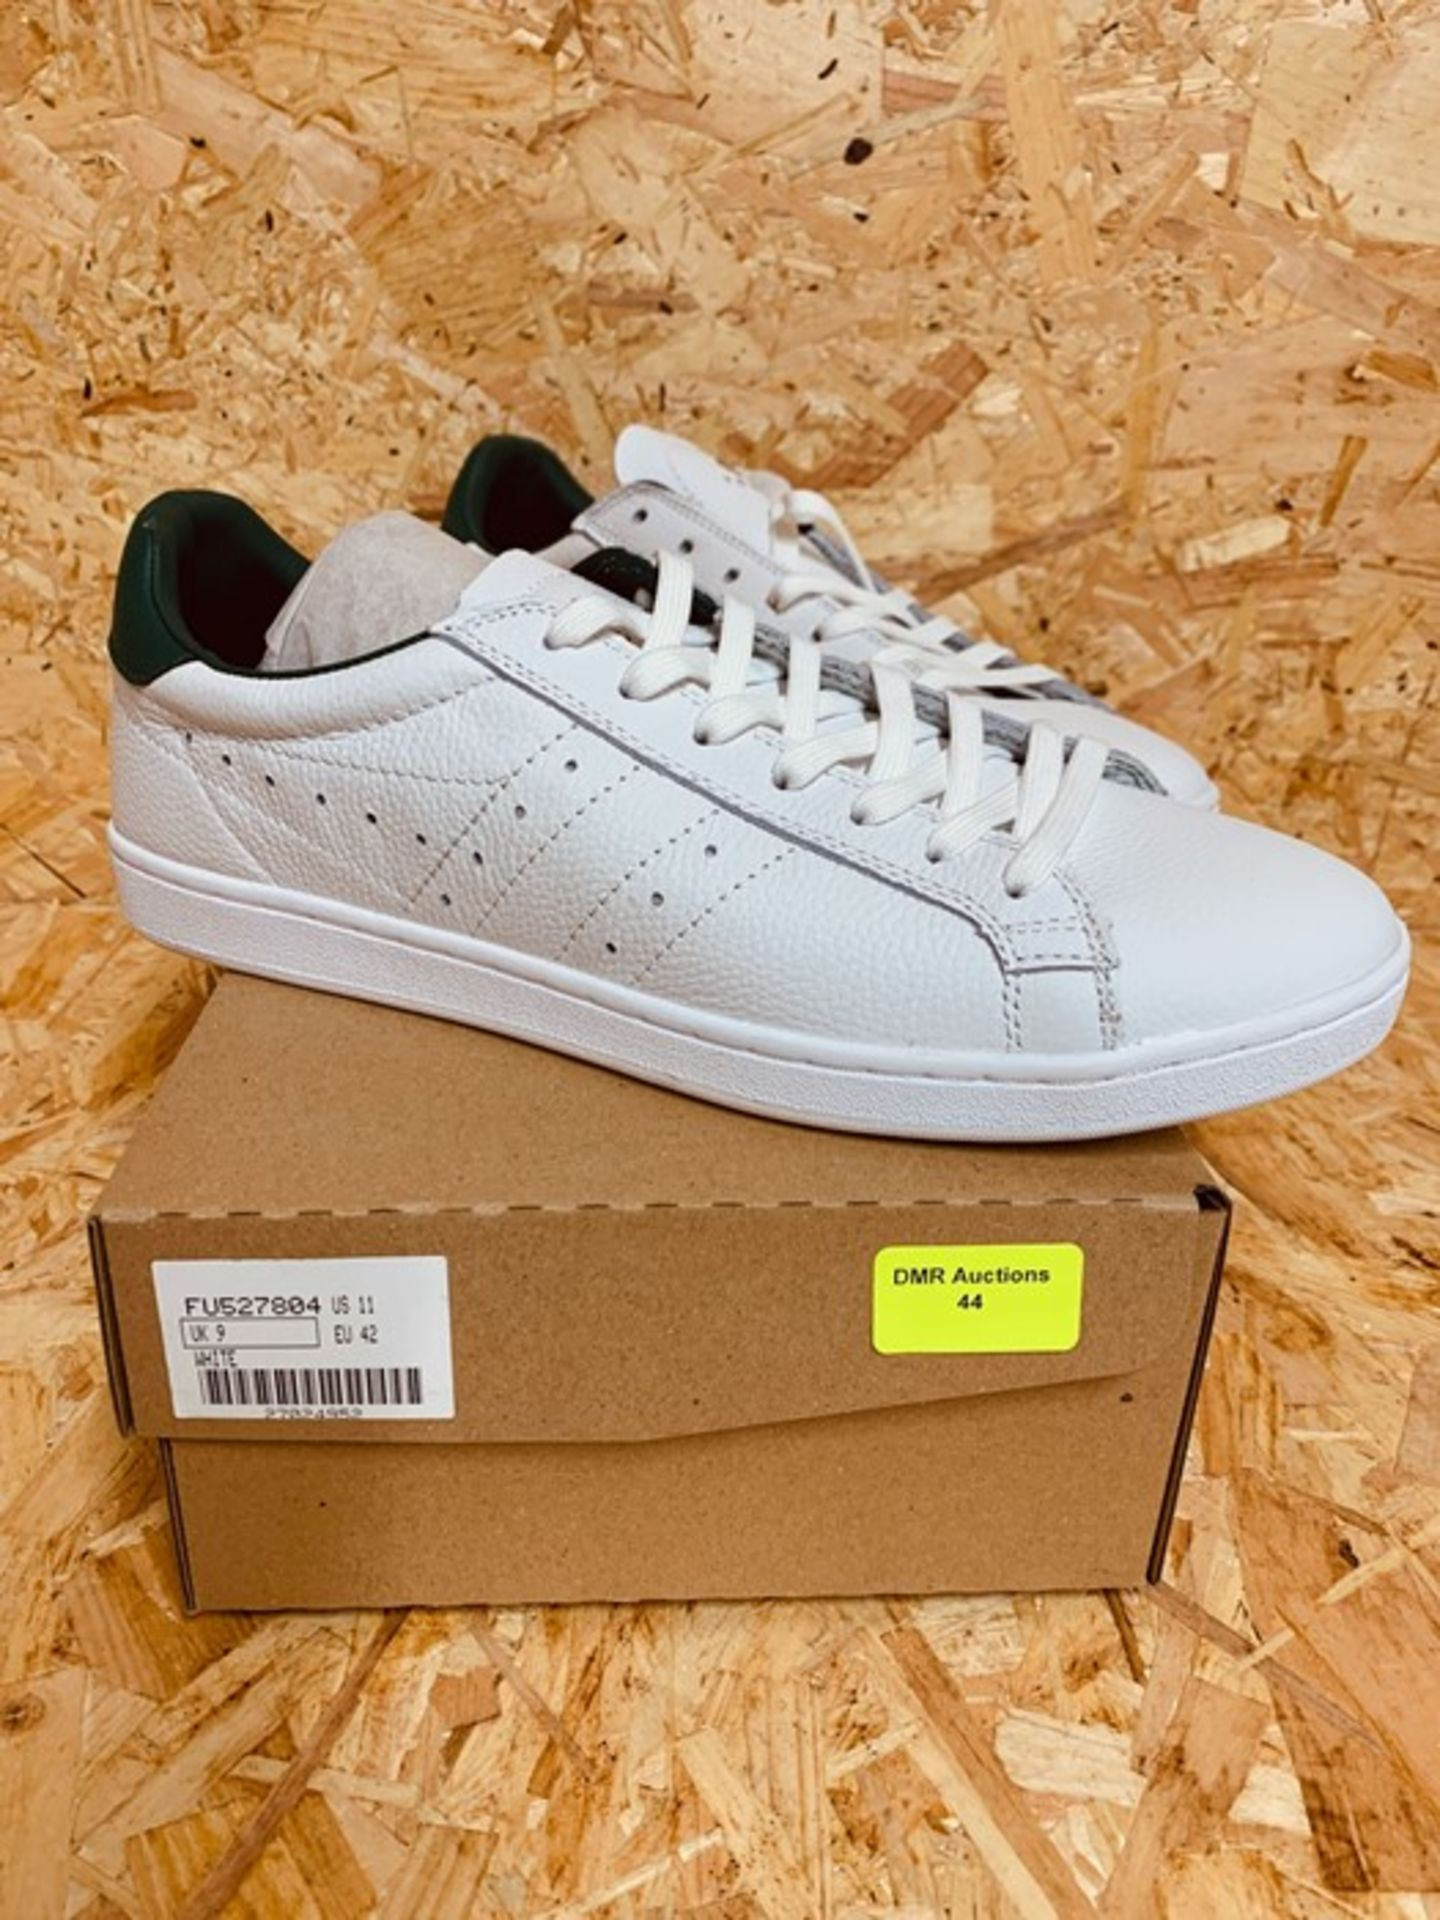 GOLA MENS CLS LEATHER TRAINER - UK SIZE 9/WHITE